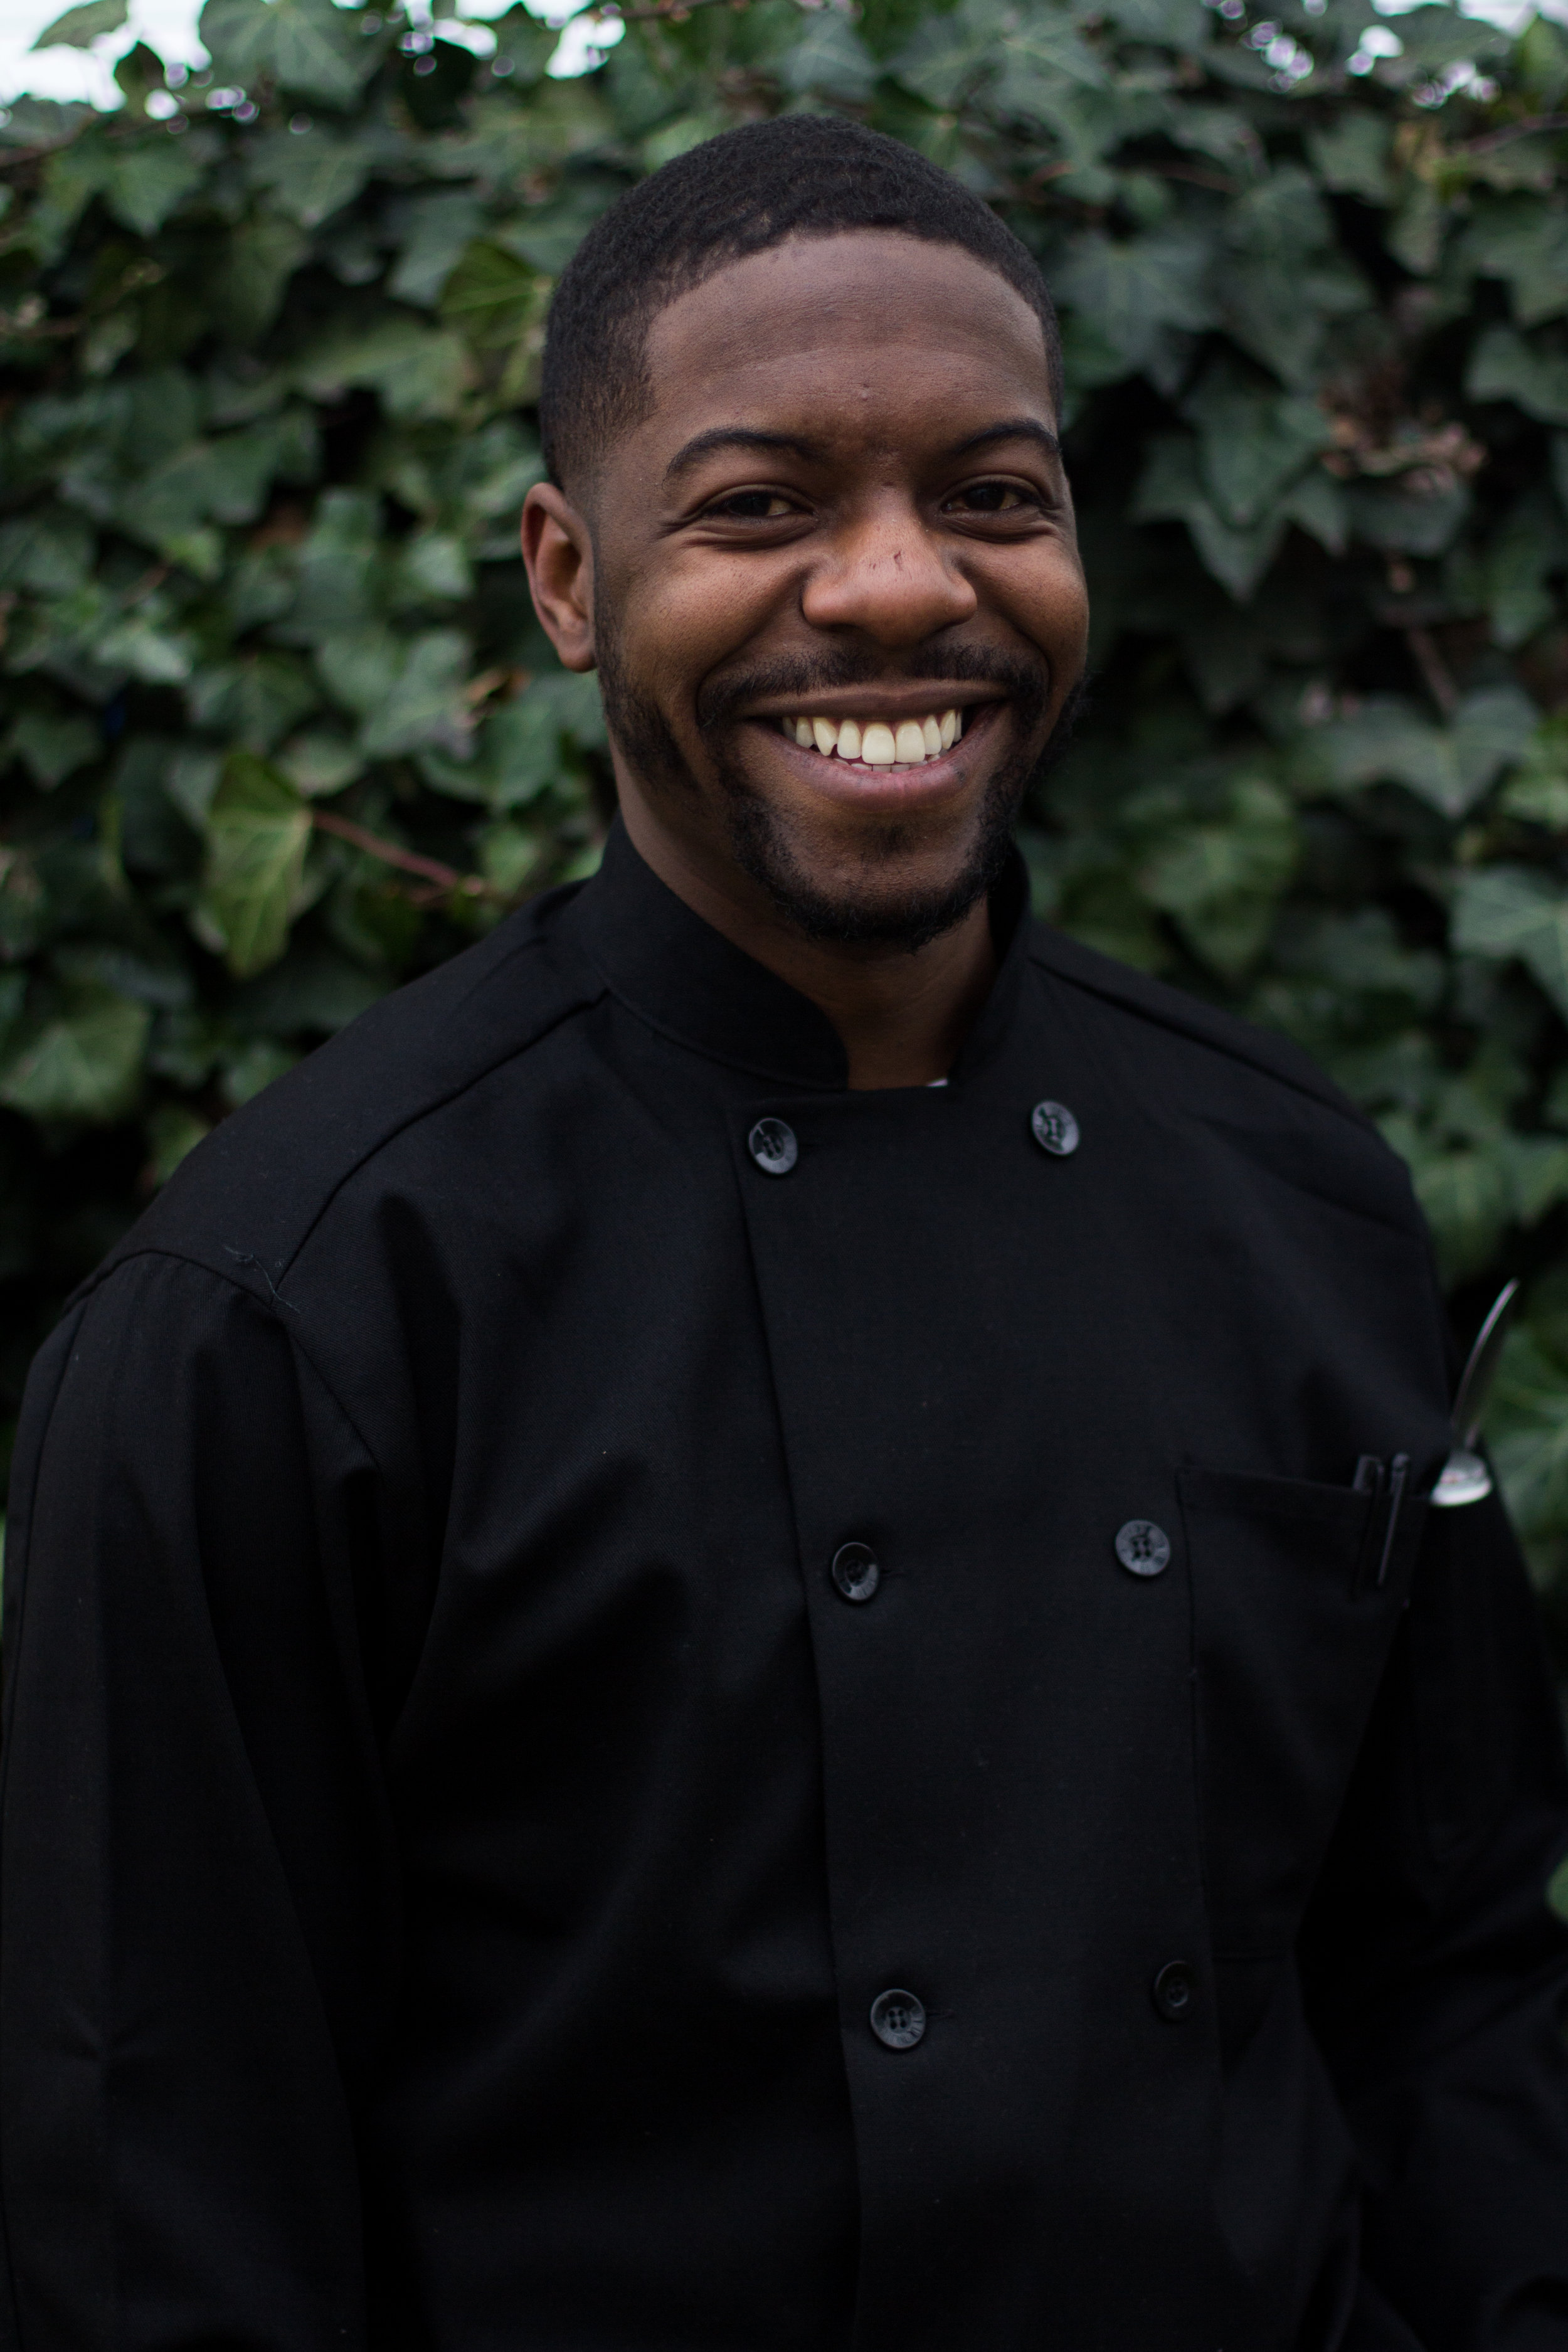 About JB - A budding culinarian with a passion for people and food, Jabari Butler focuses on creating unique memorable food experiences.